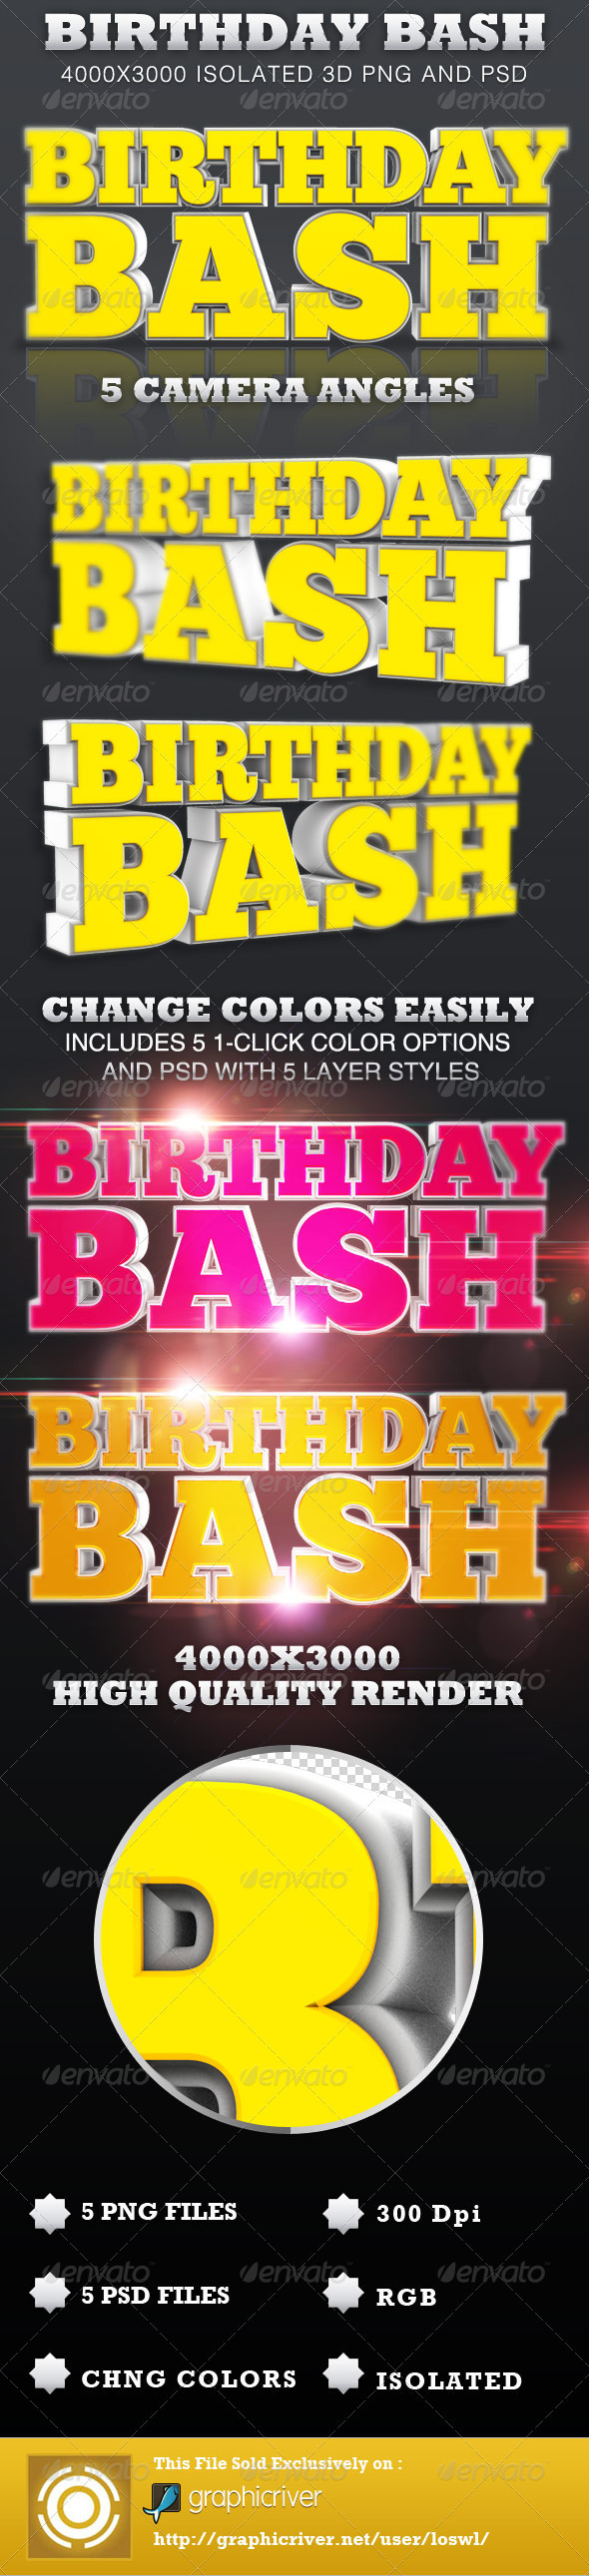 Birthday Bash Isolated 3D Text Objects - Text 3D Renders